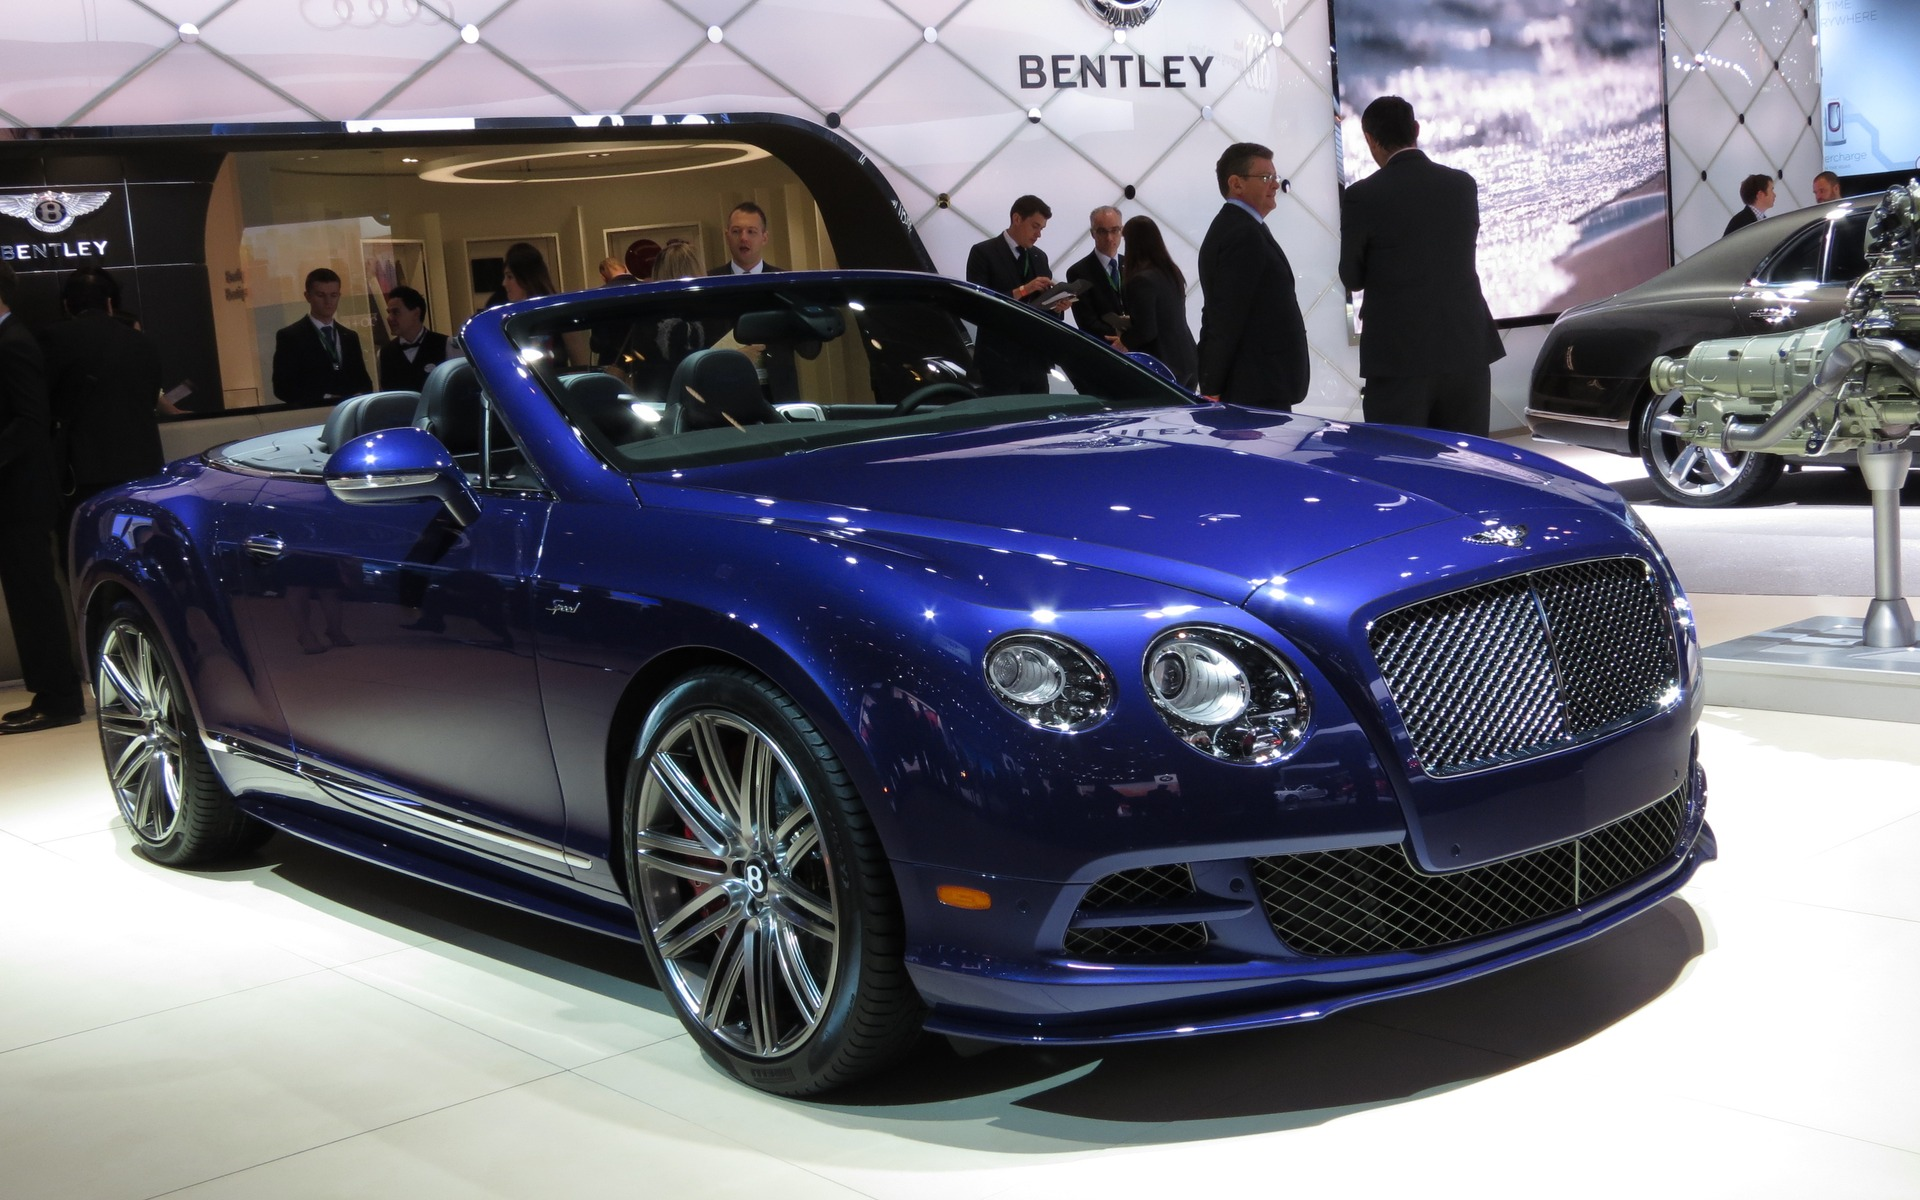 of automotive huntsville here al michigan unique sale livonia for school bentley in click high